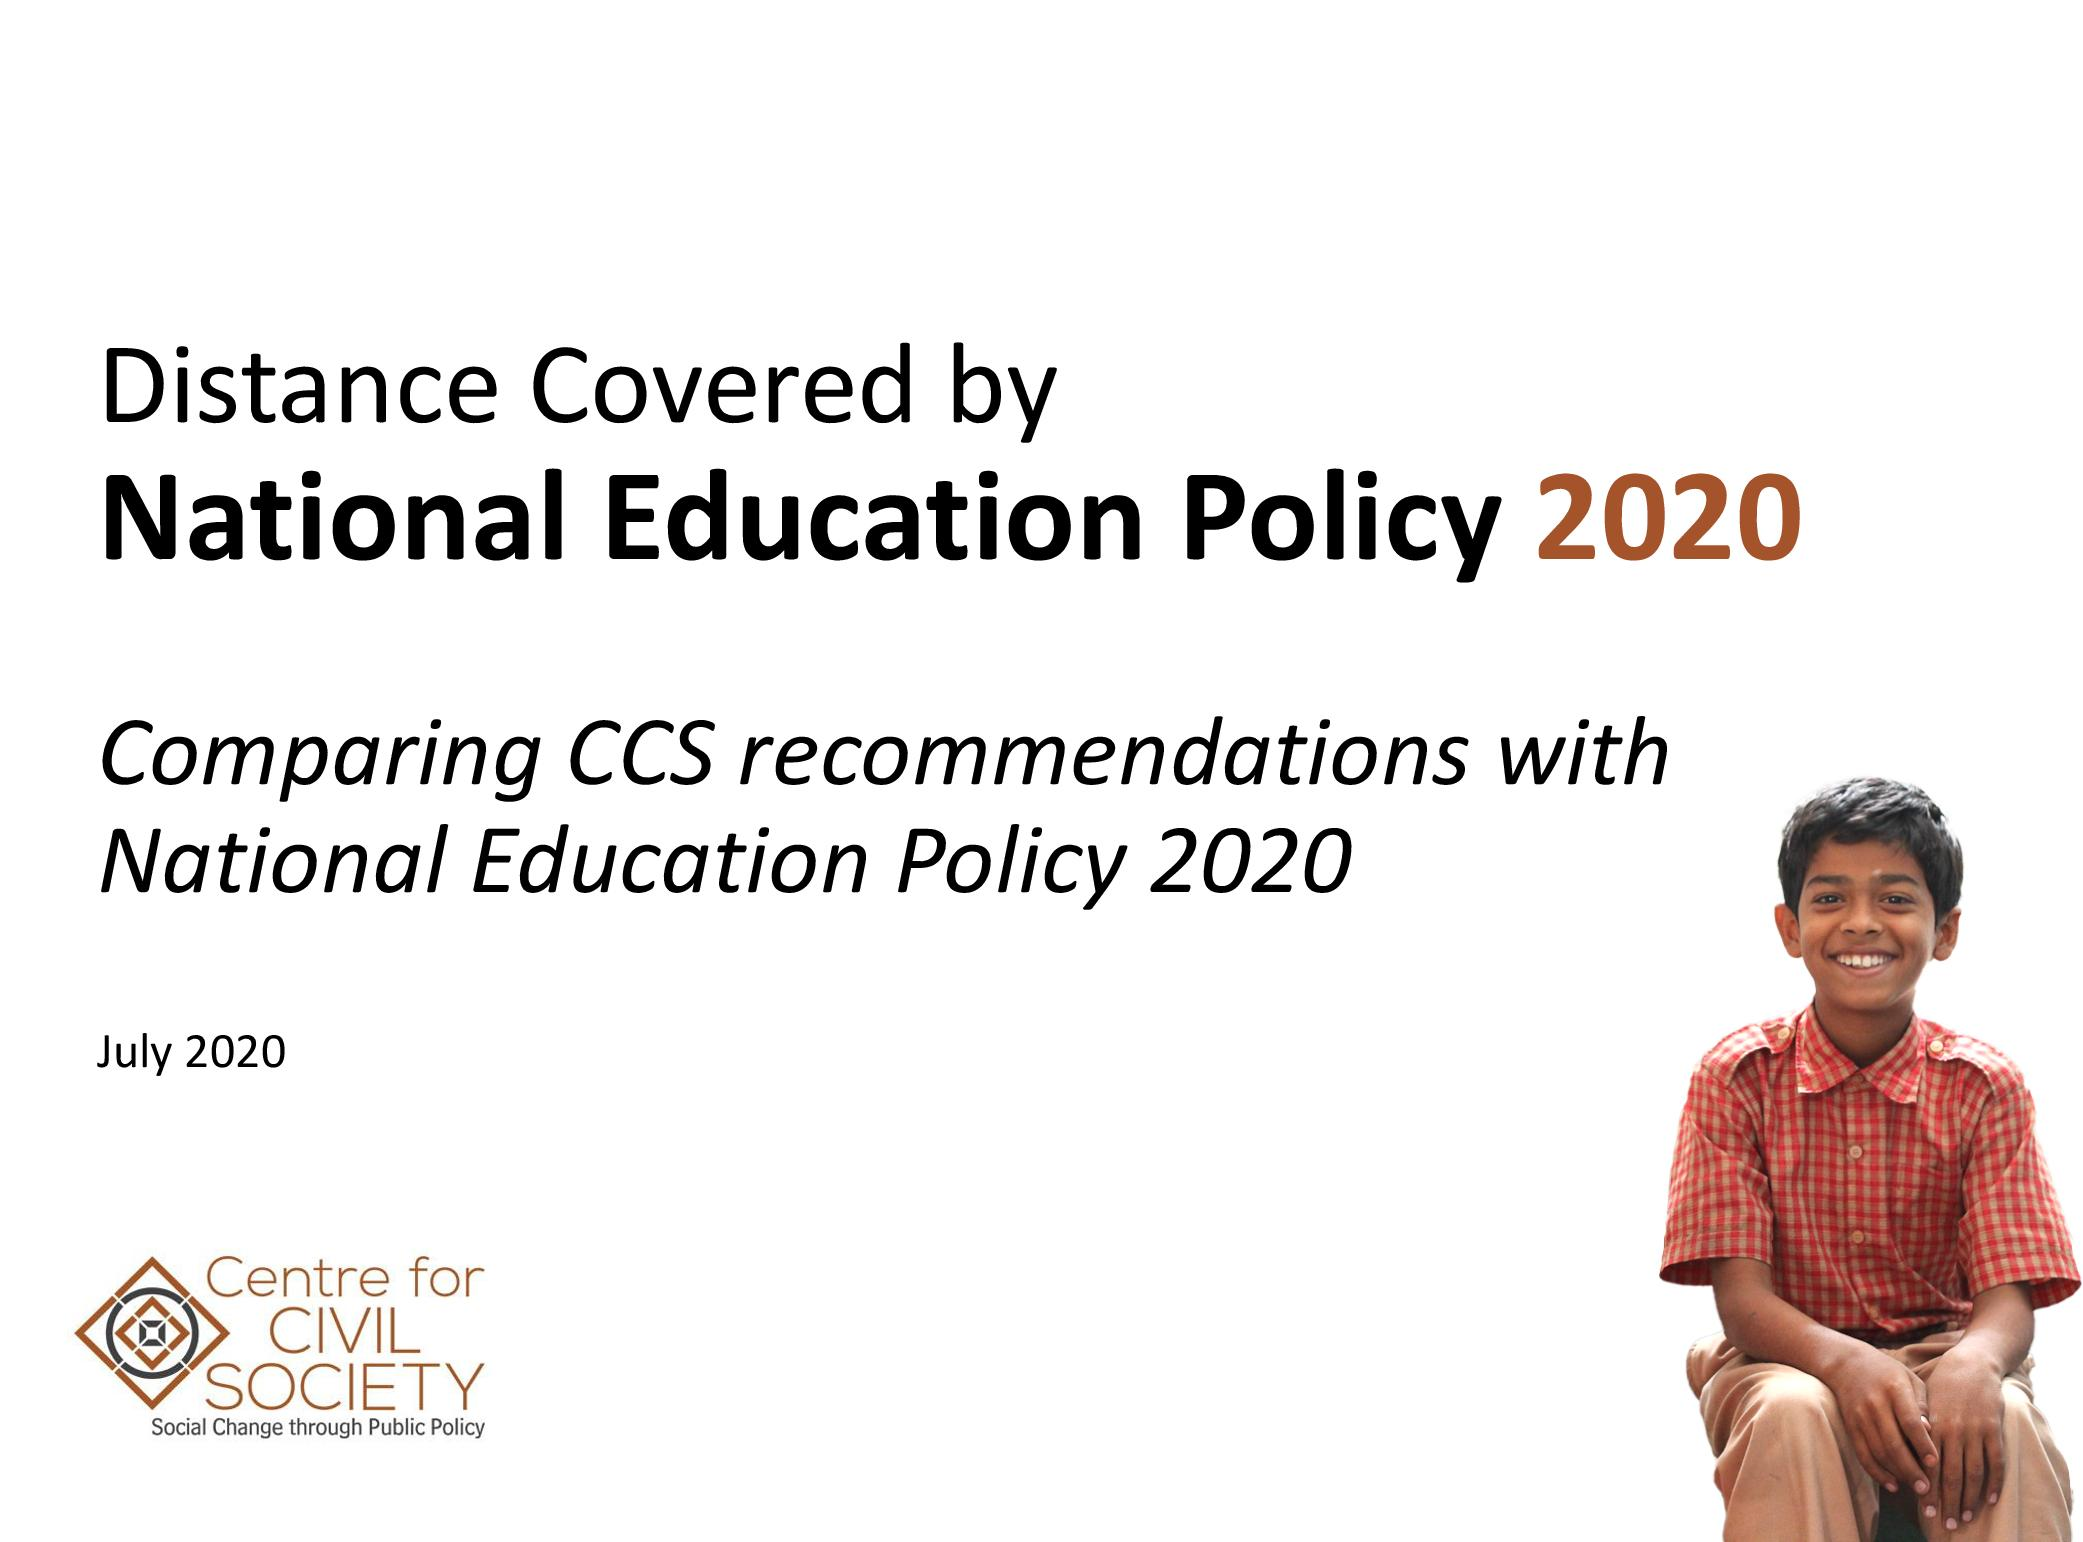 CCS K-12 Reform recommendations and NEP's Accomodations 2020